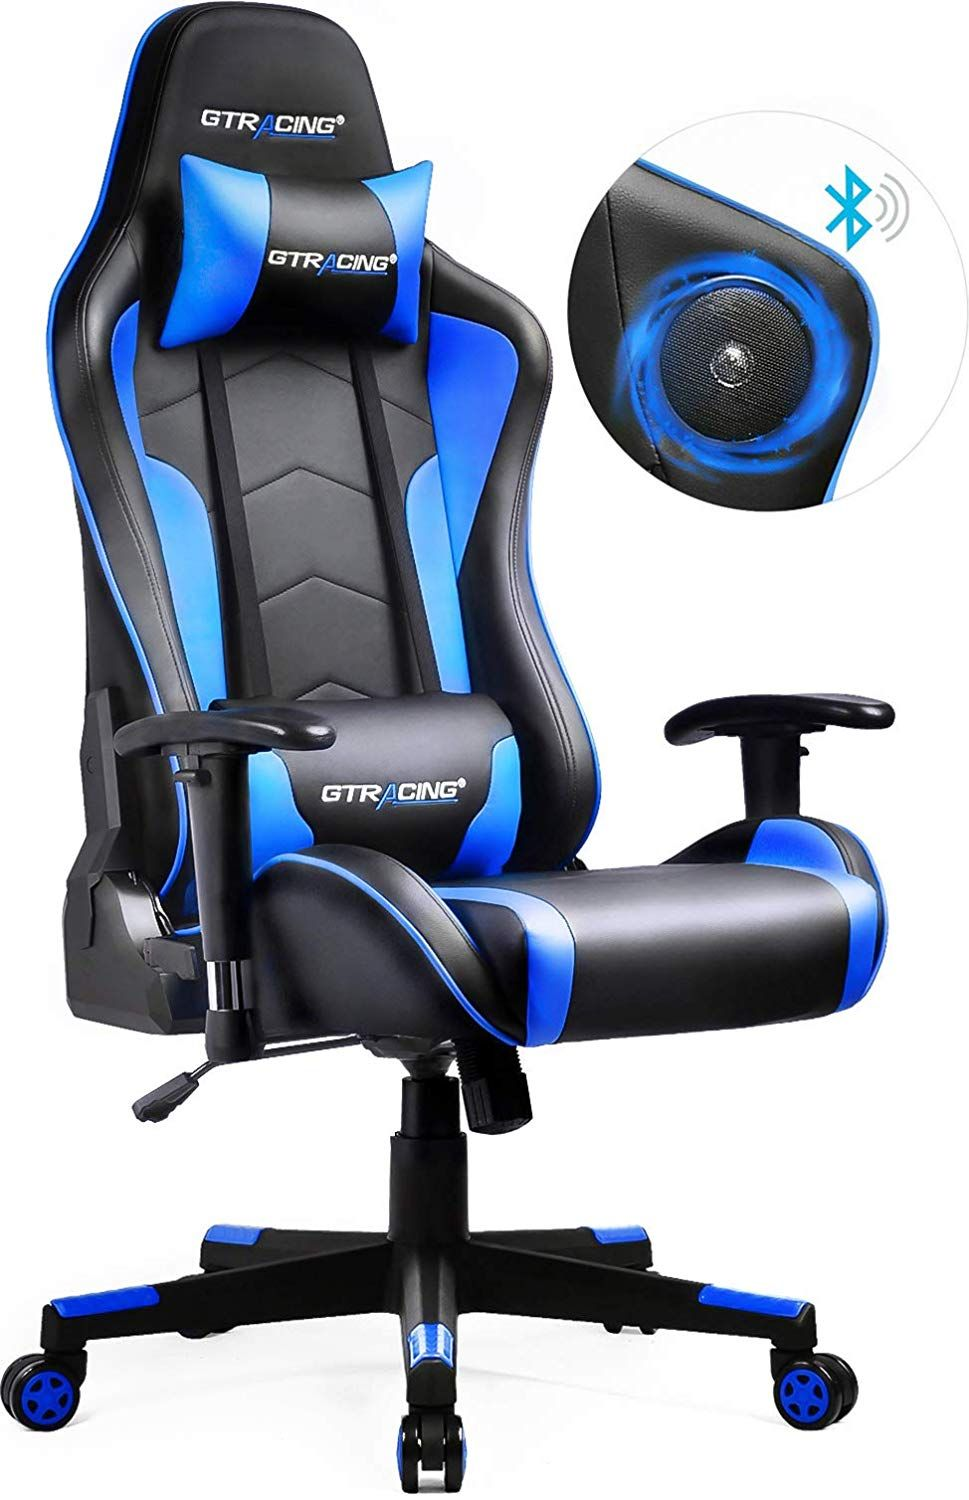 GTRacing Review their best gaming chairs Gaming chair